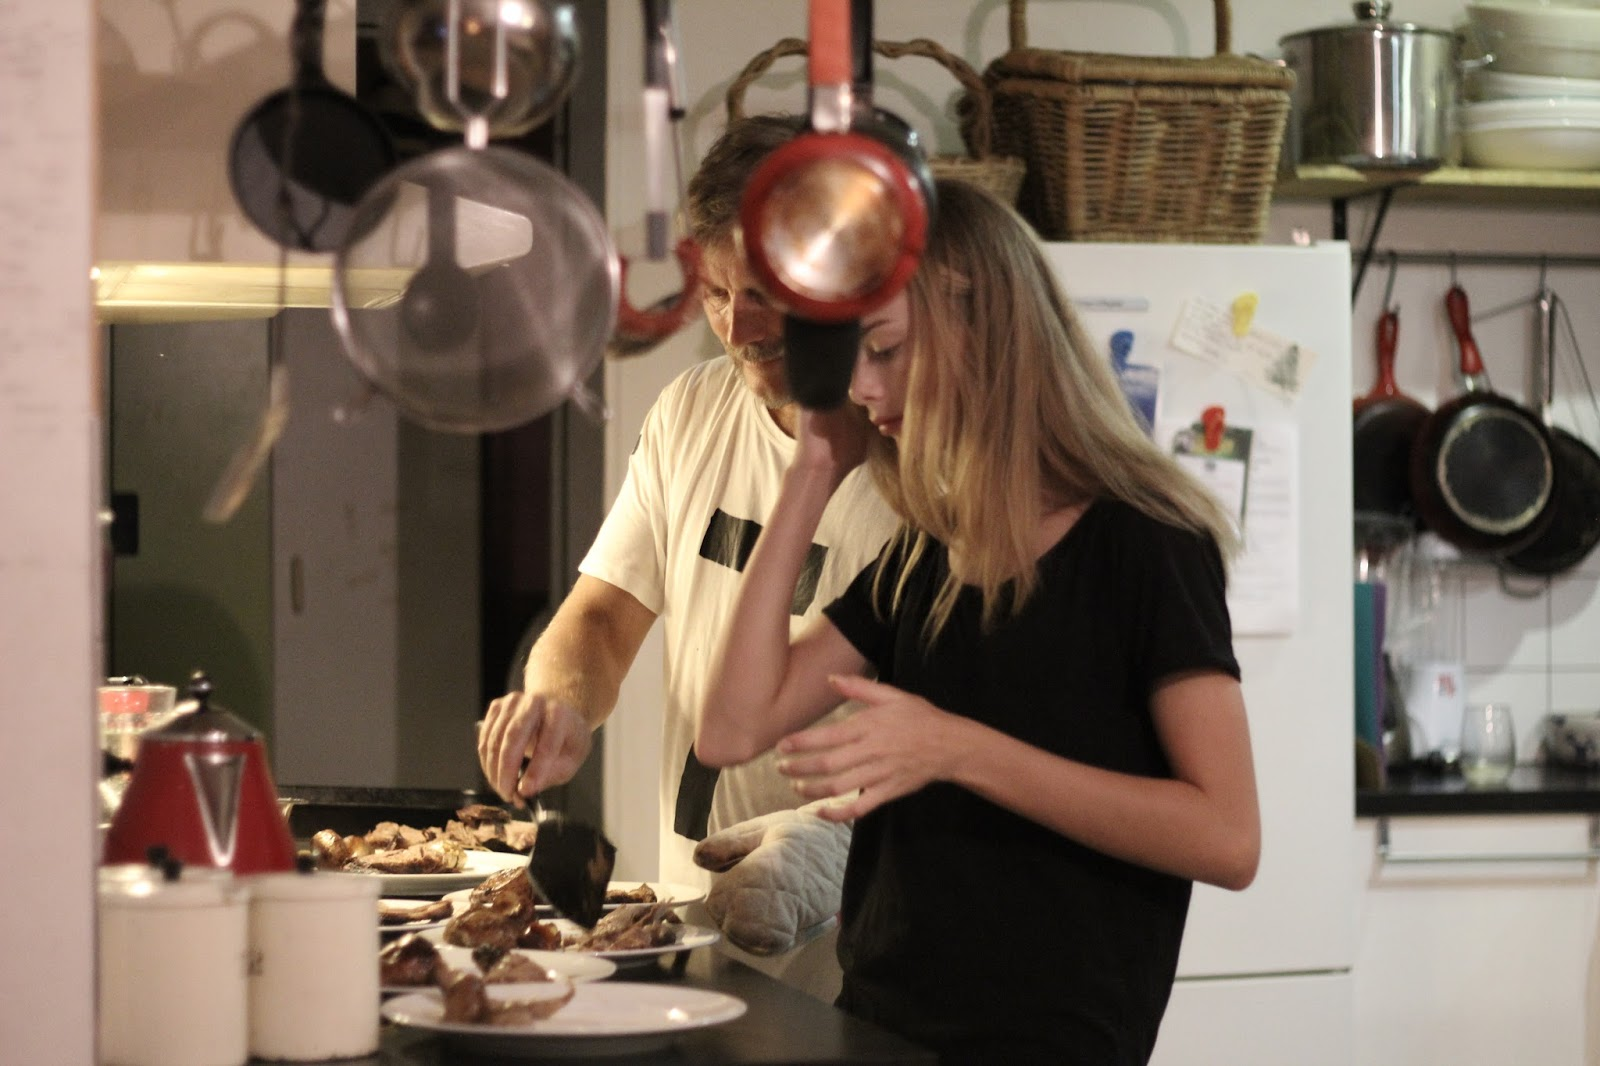 16-03-2016-australia-siebert-surfboards-18